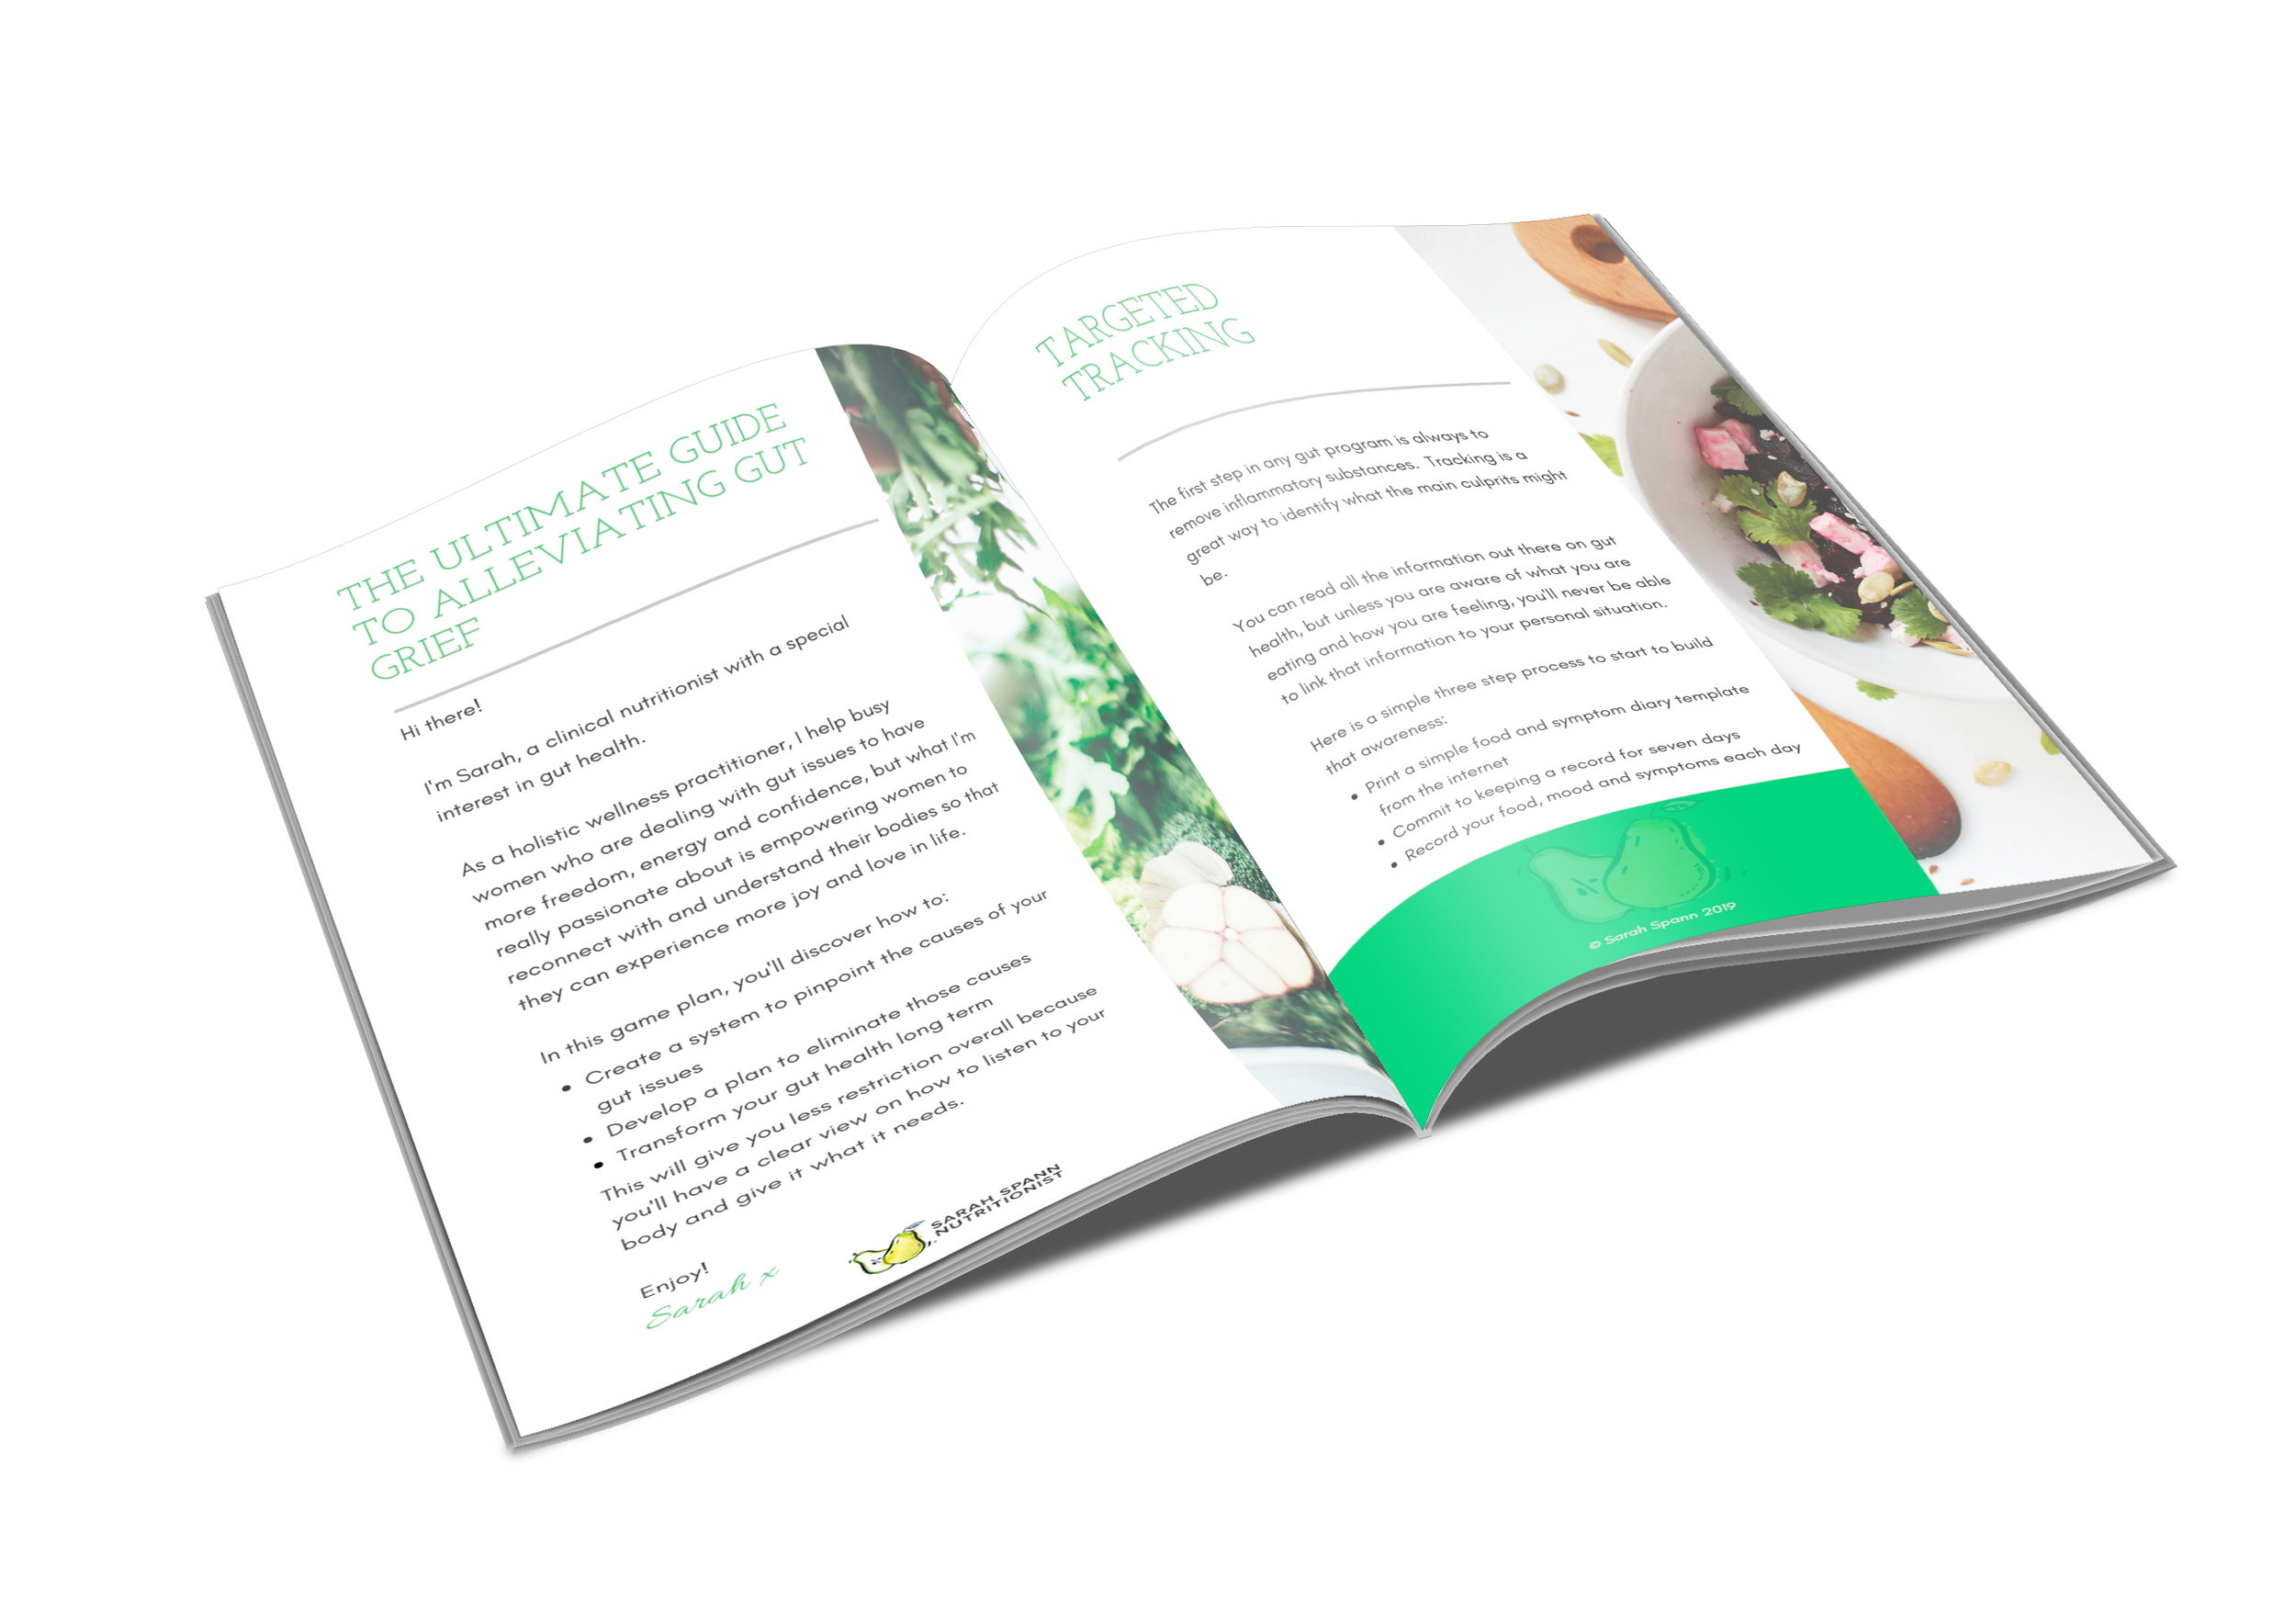 happy gut blueprint - Your free download to create more calm, clarity and confidence around eating